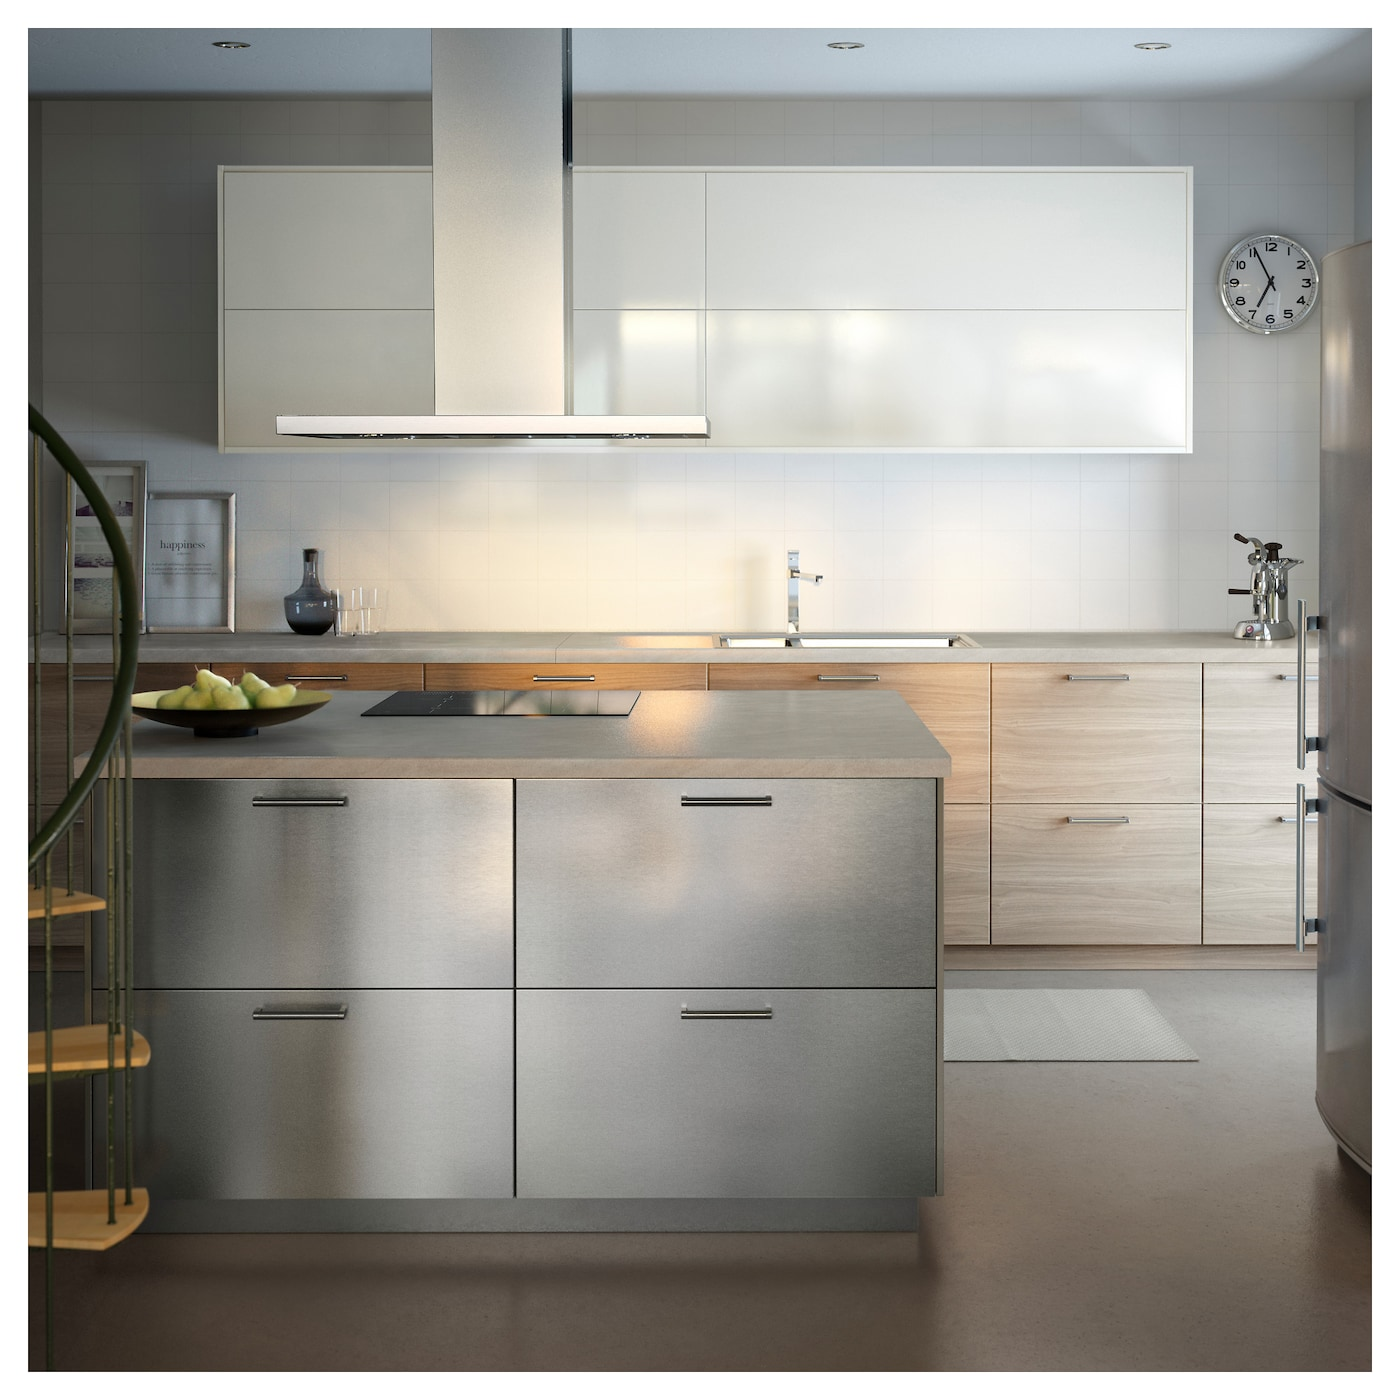 ikea metal kitchen cabinets grevsta door stainless steel 40 x 80 cm ikea 4583